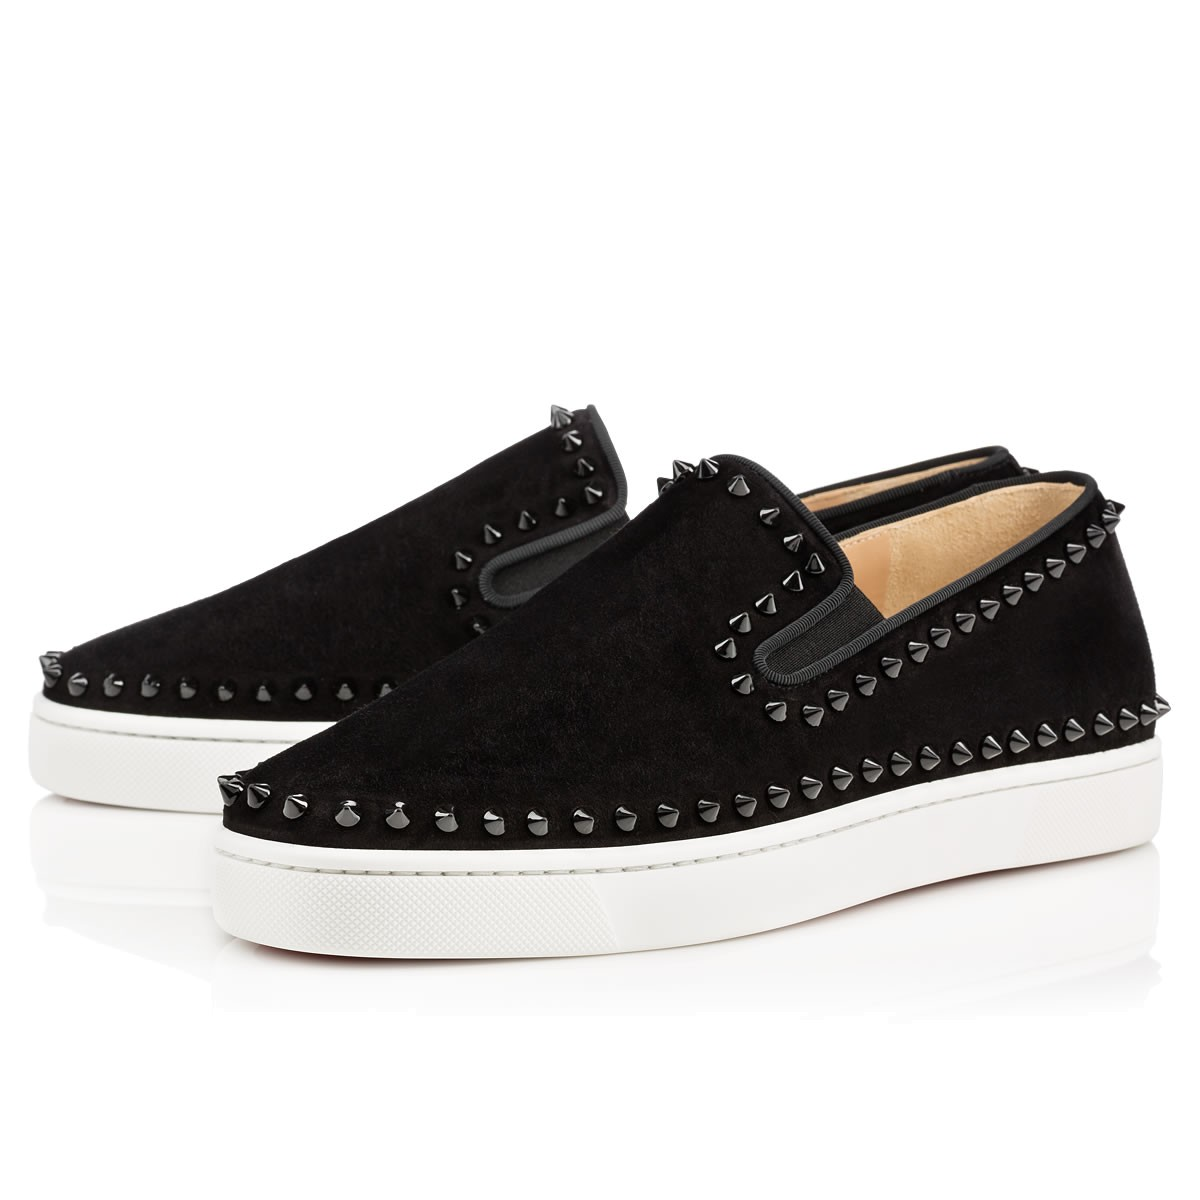 9770317442b Christian Louboutin Roller-Boat Spiked Slip-On Trainers In Black ...